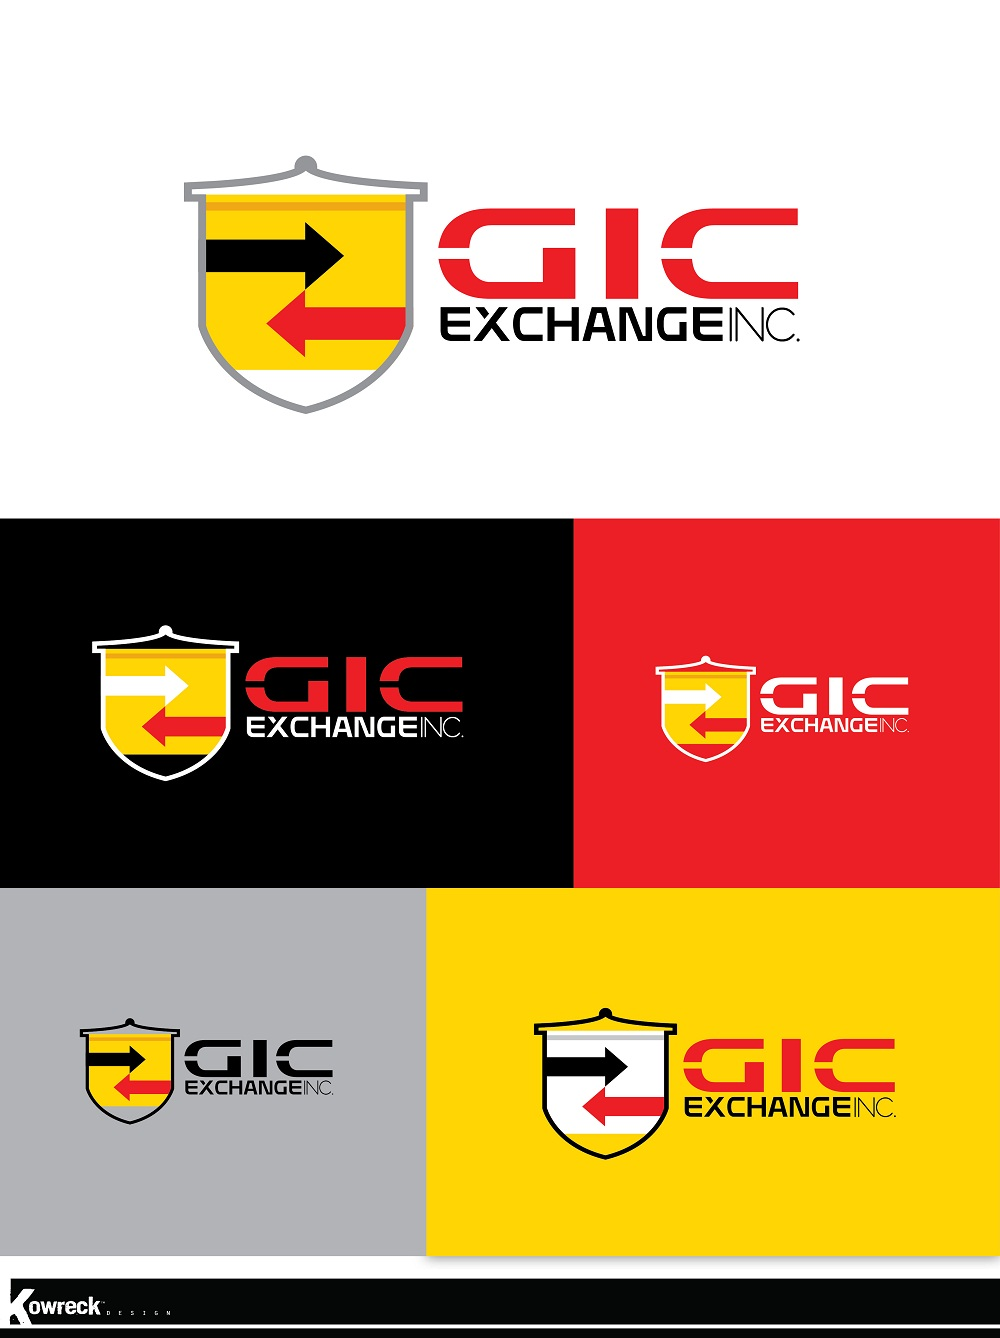 Logo Design by kowreck - Entry No. 138 in the Logo Design Contest Logo Design Needed for Exciting New Company GIC Exchange Inc..